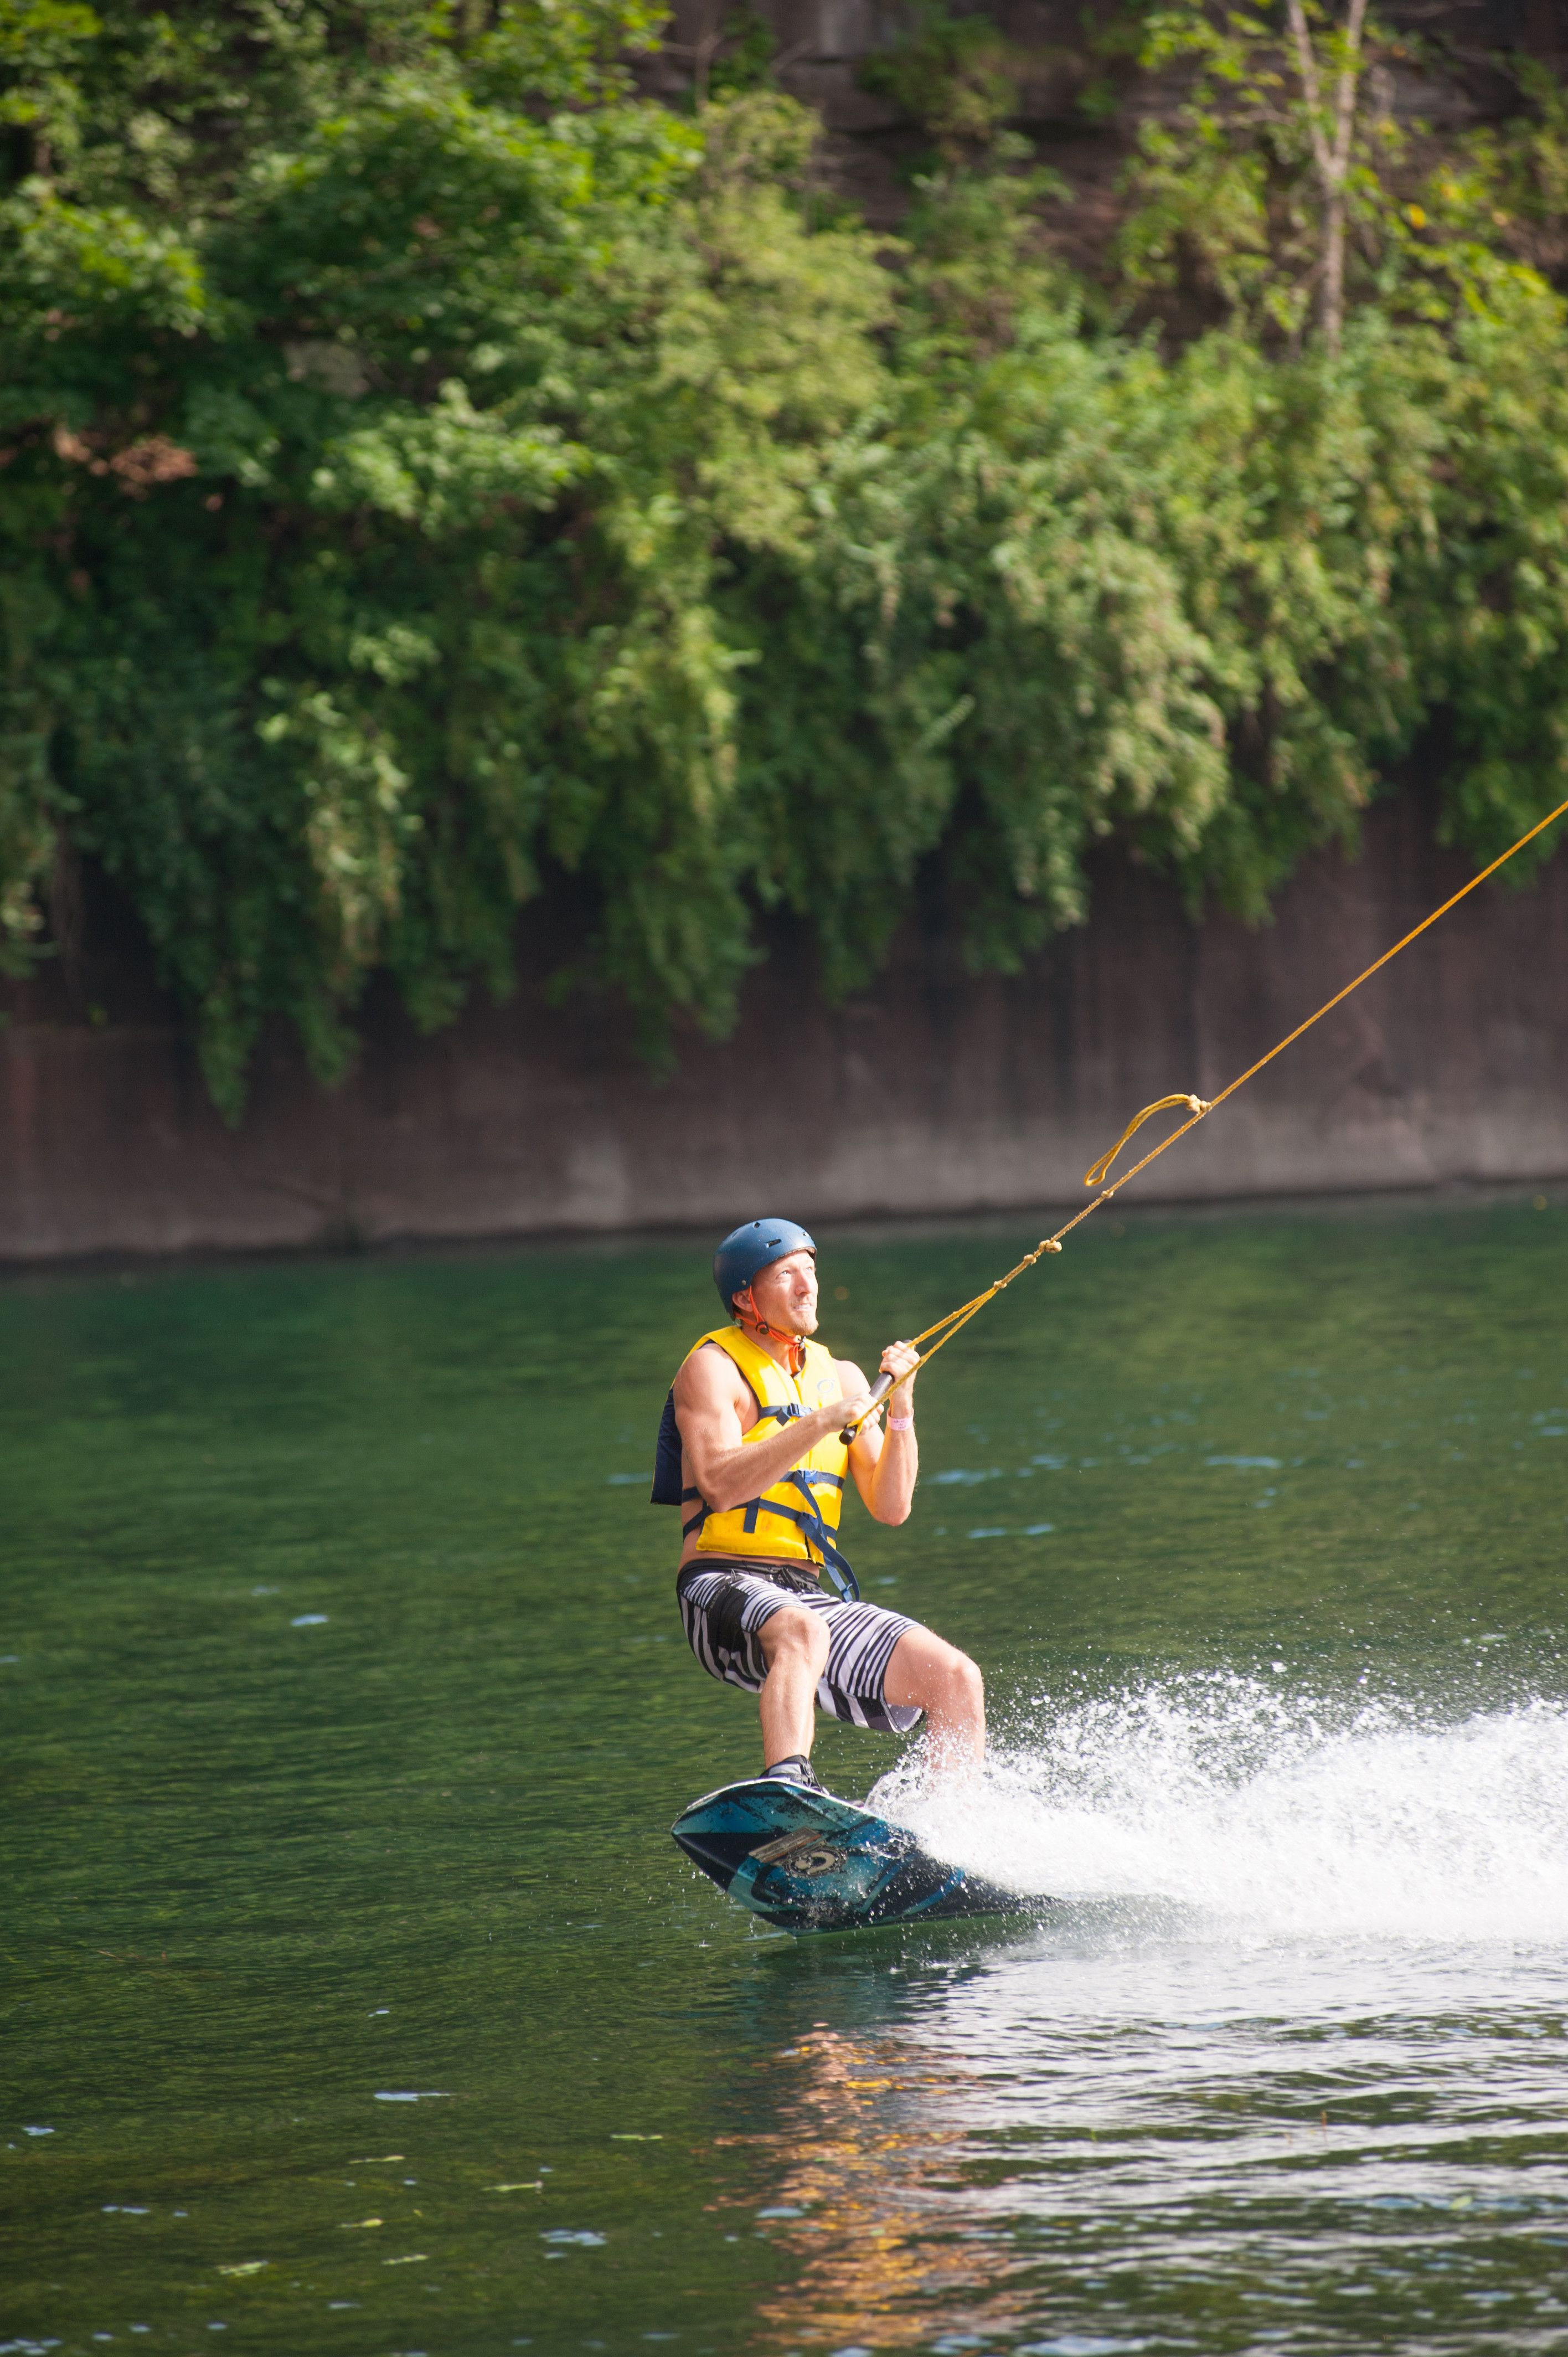 *Brownstone Discovery Park (Portland)*   Time to challenge yourself to some outdoor fun! On Open House Day (June 13) Brownstone is open from 10 a.m. until 6 p.m., offering 25% off Wakeboard entrance passes. [Photo credit: Kindra Clineff]